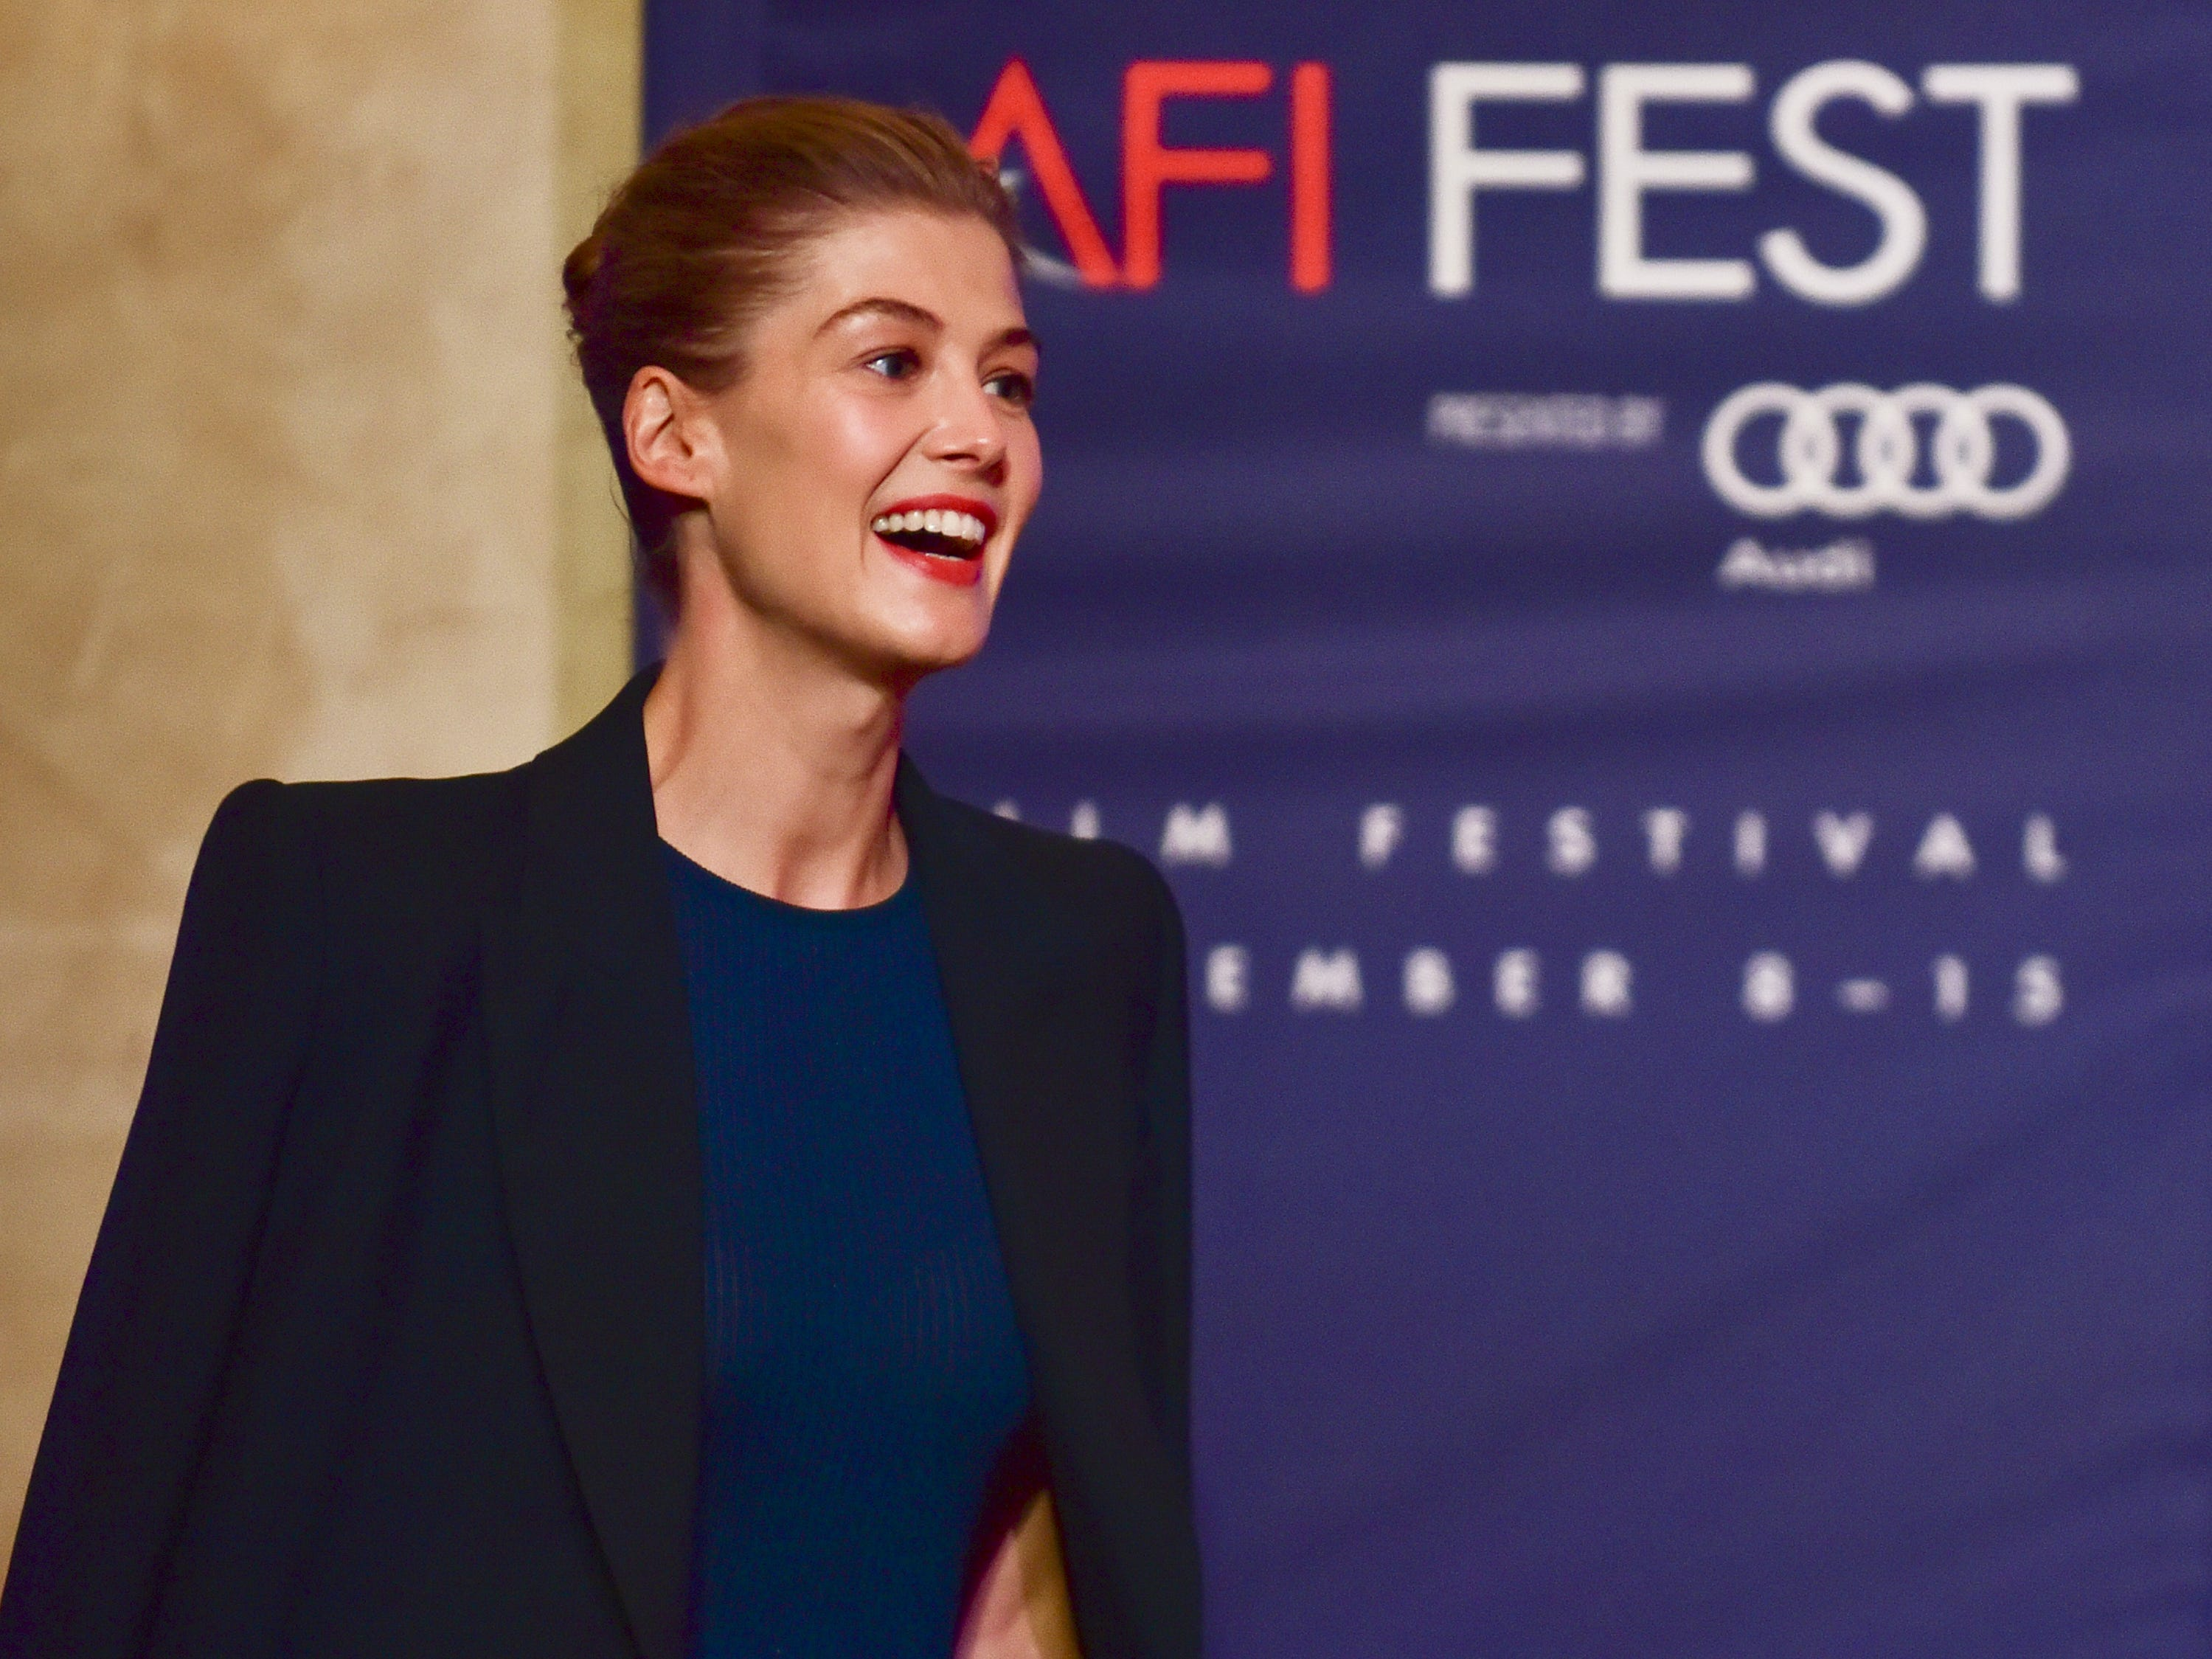 LOS ANGELES, CALIFORNIA - NOVEMBER 11: Rosamund Pike onstage at AFI FEST 2018 Presented by Audi - Indie Contenders at The Hollywood Roosevelt Hotel on November 11, 2018 in Los Angeles, California. (Photo by Rodin Eckenroth/Getty Images for AFI) ORG XMIT: 775252718 ORIG FILE ID: 1066350598